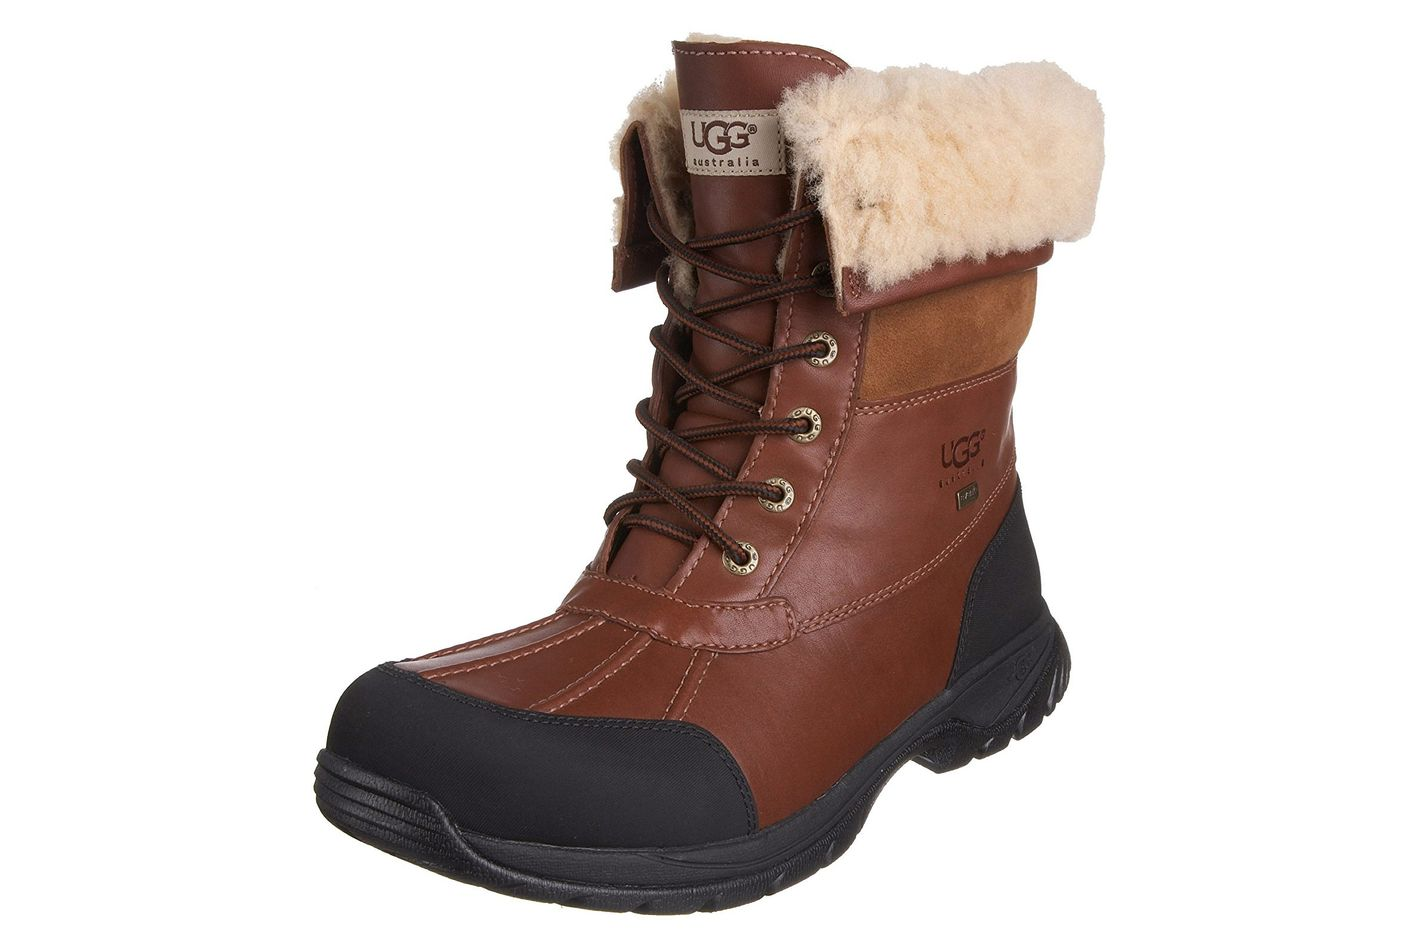 best ugg boots for snow